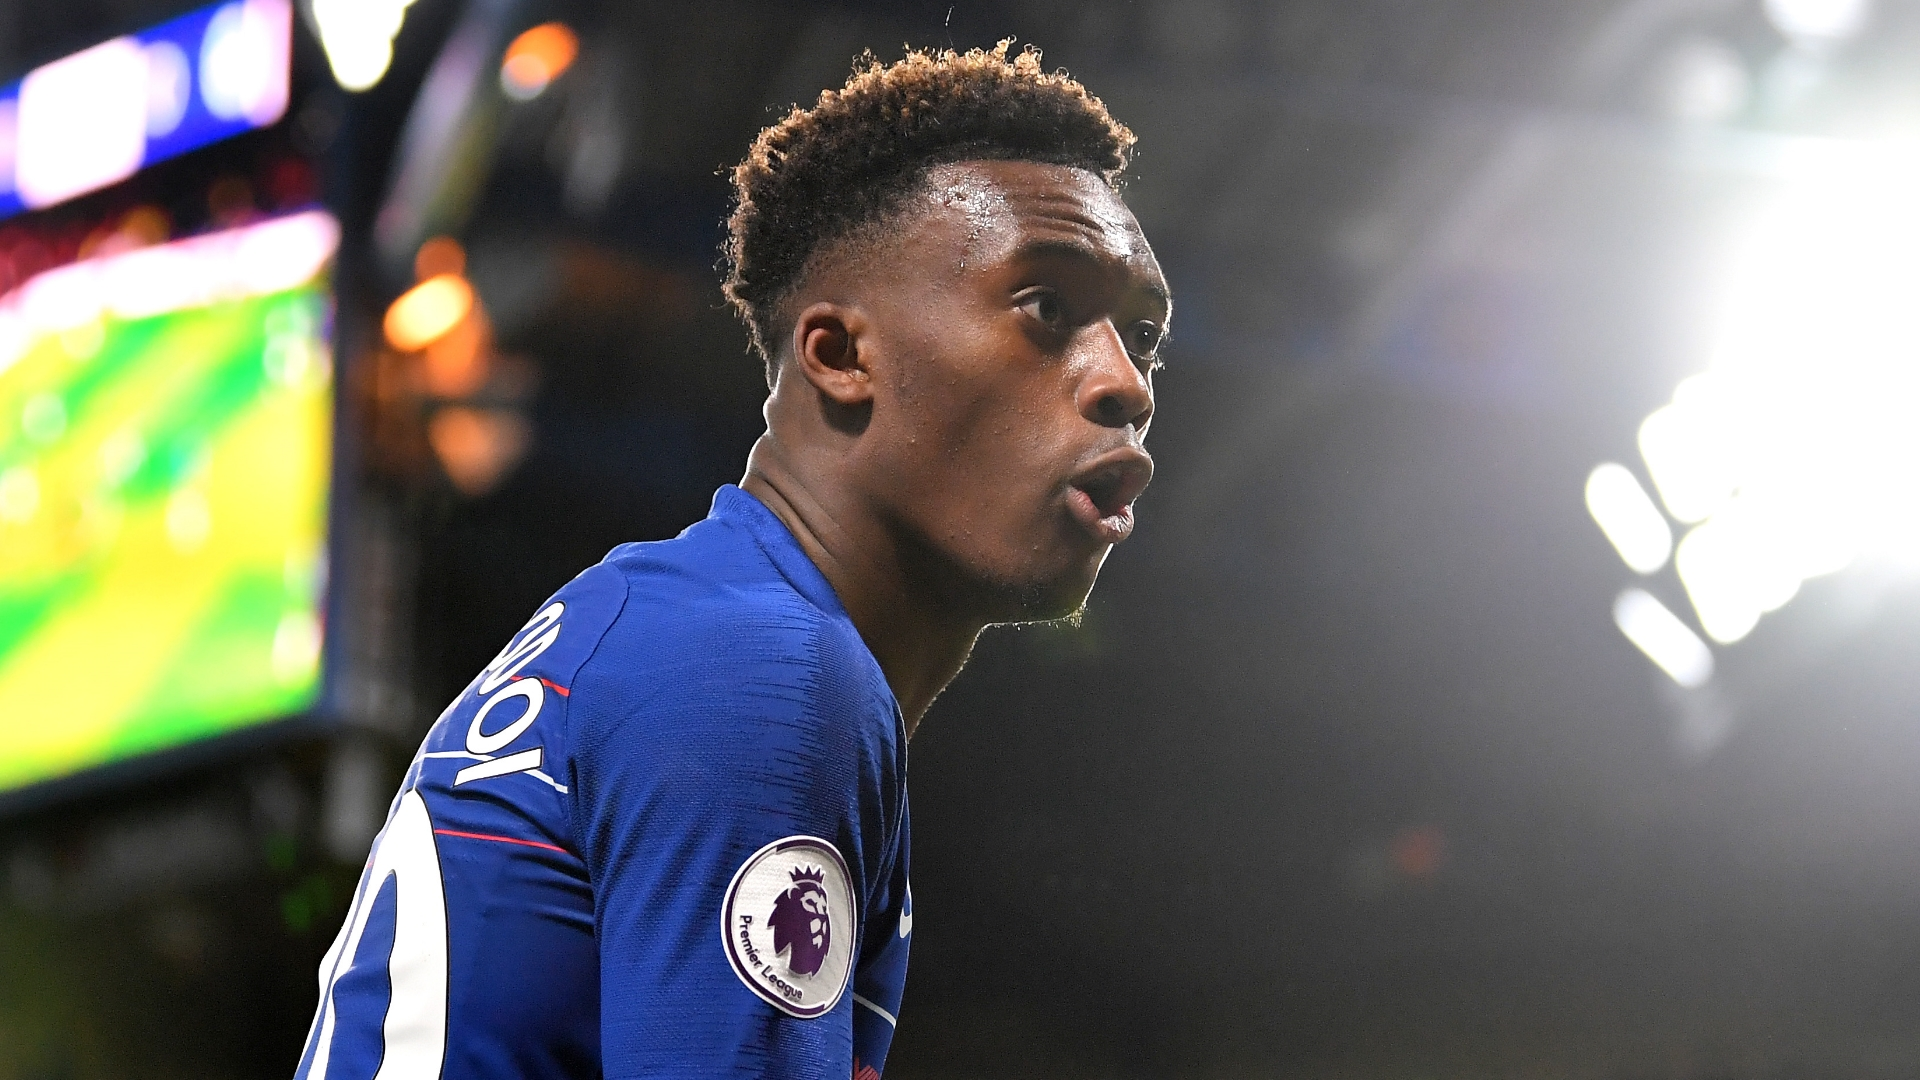 Hudson-Odoi set to sign five-year, £100,000-a-week Chelsea contract